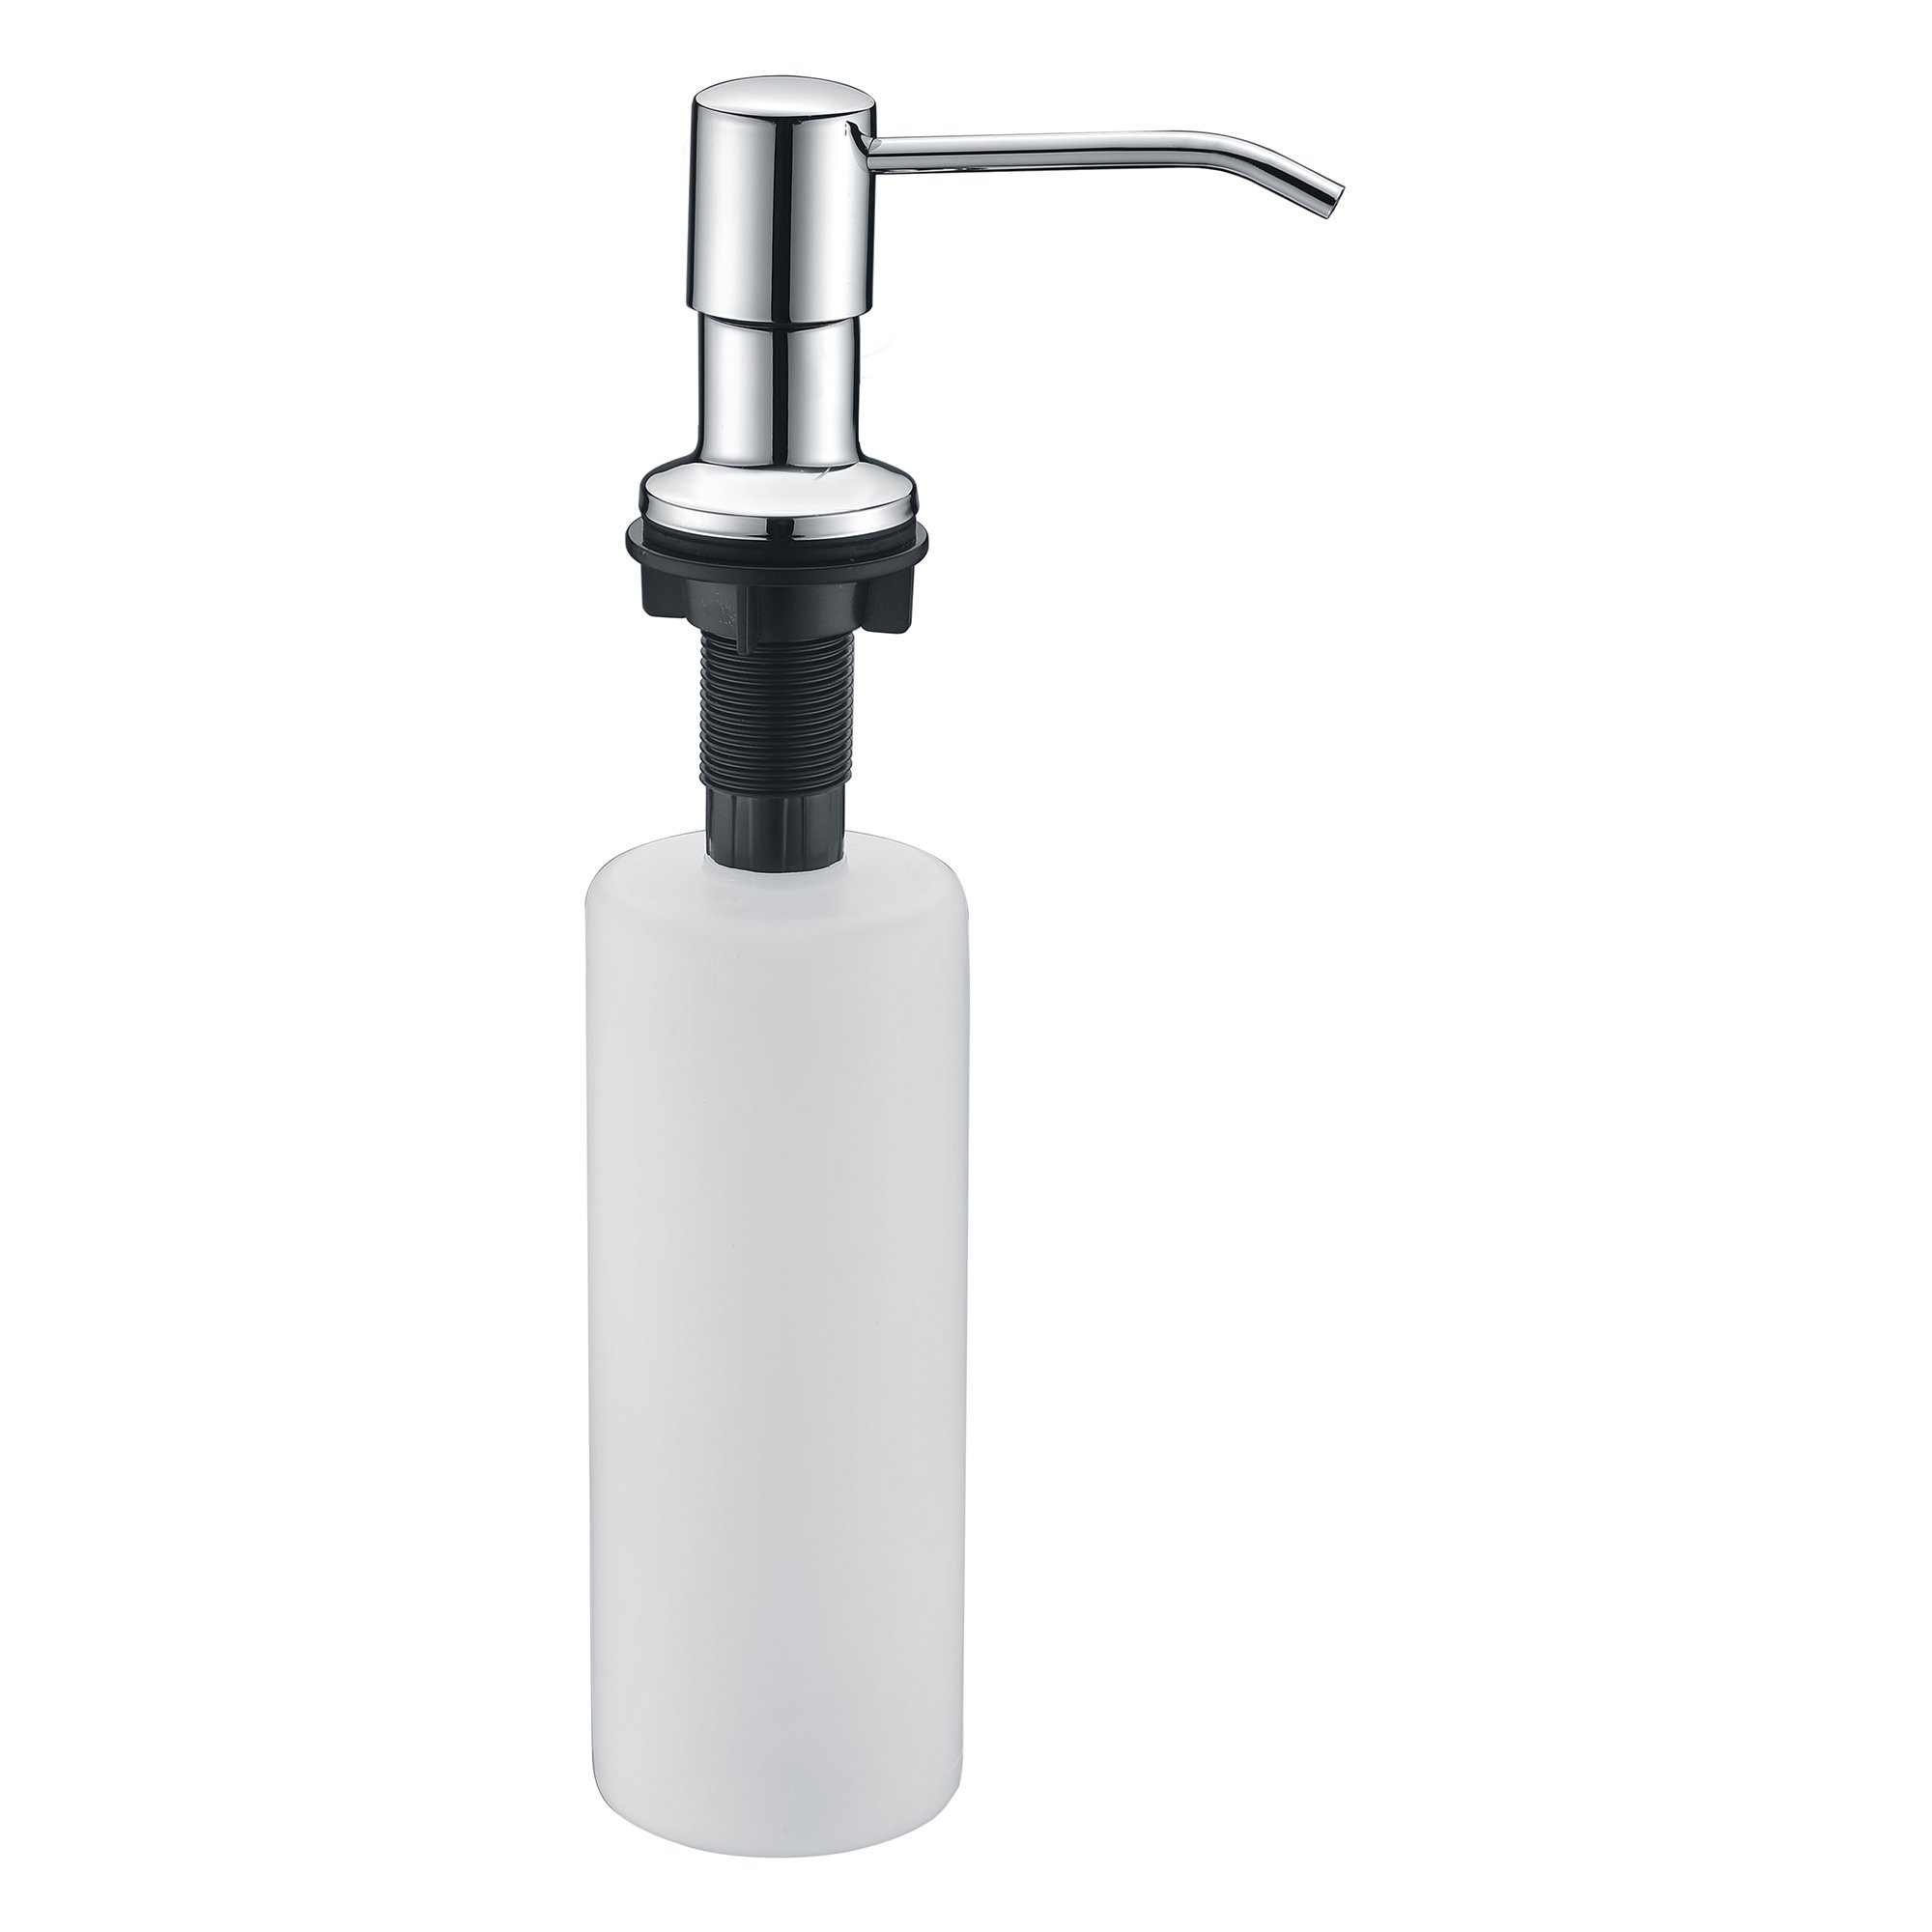 SUCASA Chrome Kitchen Sink Soap Dispenser Stainless Steel Pump Head 17 oz Large Volume Liquid Bottle Bathroom Lotion Dispenser Basic Kitchen Sink Accessories by SUCASA (Image #3)